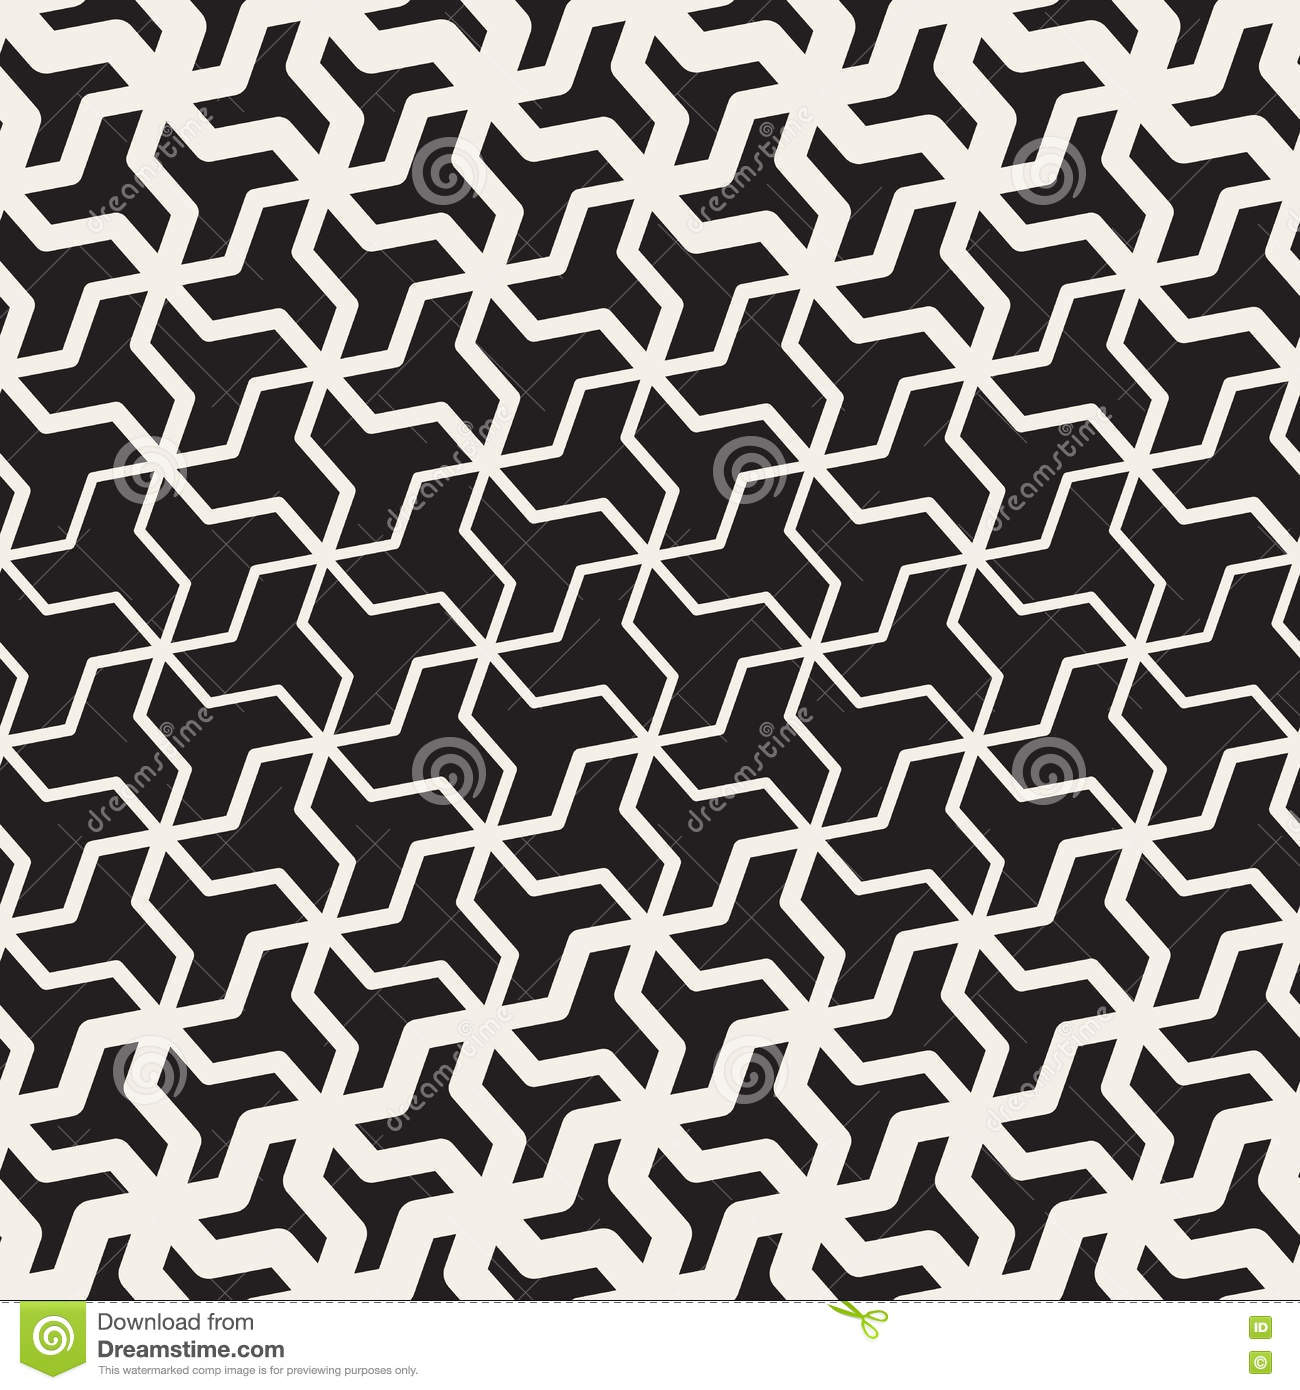 Vector Seamless Black And White Geometric Triangle Shape Tessellation Halftone Line Grid Pattern